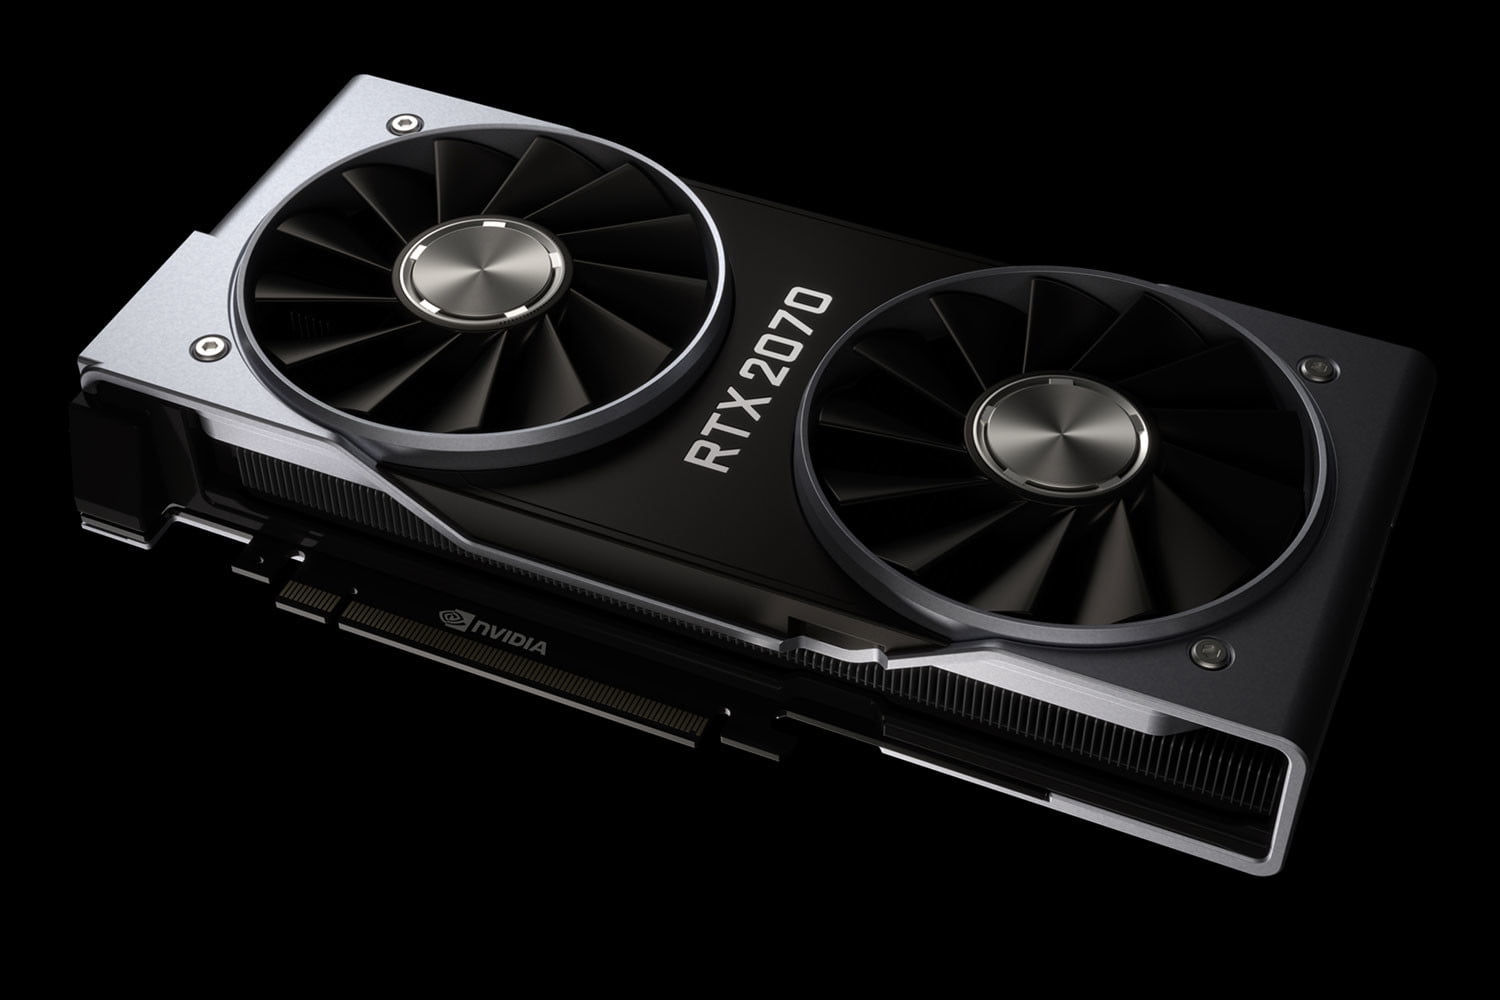 RTX 2070 vs  GTX 1080: Should You Upgrade? | Digital Trends